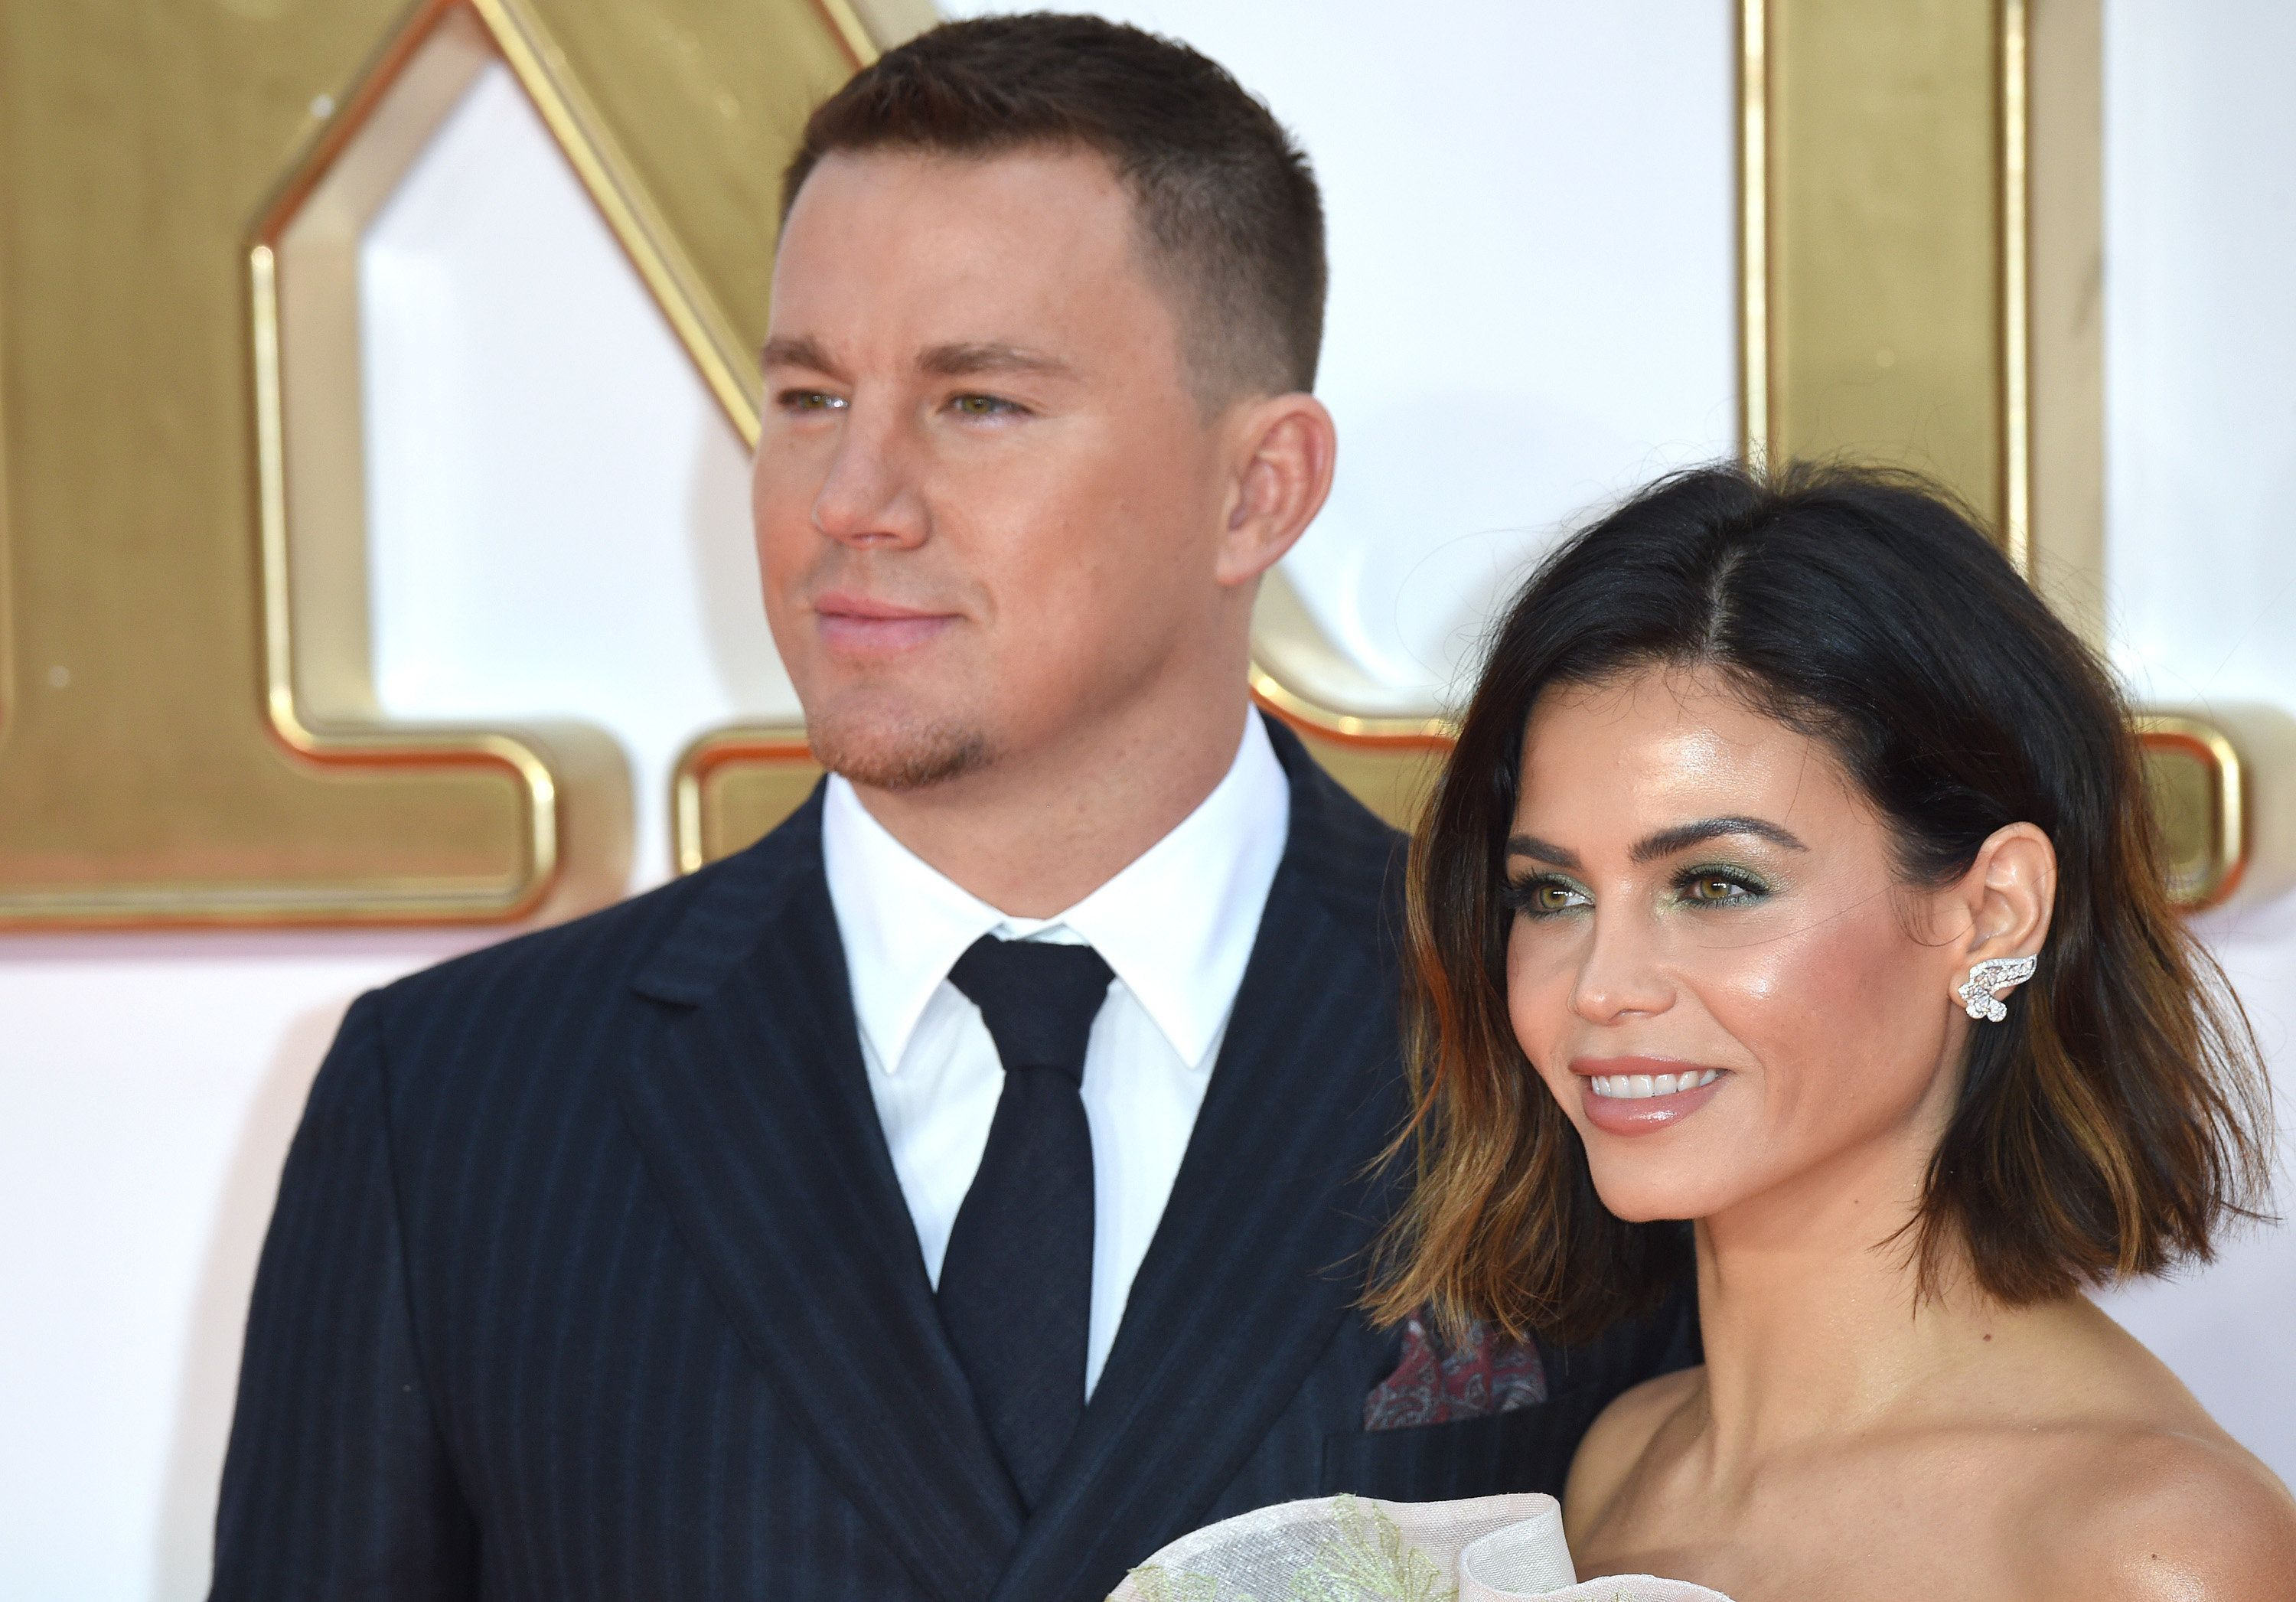 LONDON, ENGLAND - SEPTEMBER 18:  Channing Tatum and Jenna Dewan attend the 'Kingsman: The Golden Circle' World Premiere held at Odeon Leicester Square on September 18, 2017 in London, England.  (Photo by Anthony Harvey/Getty Images)